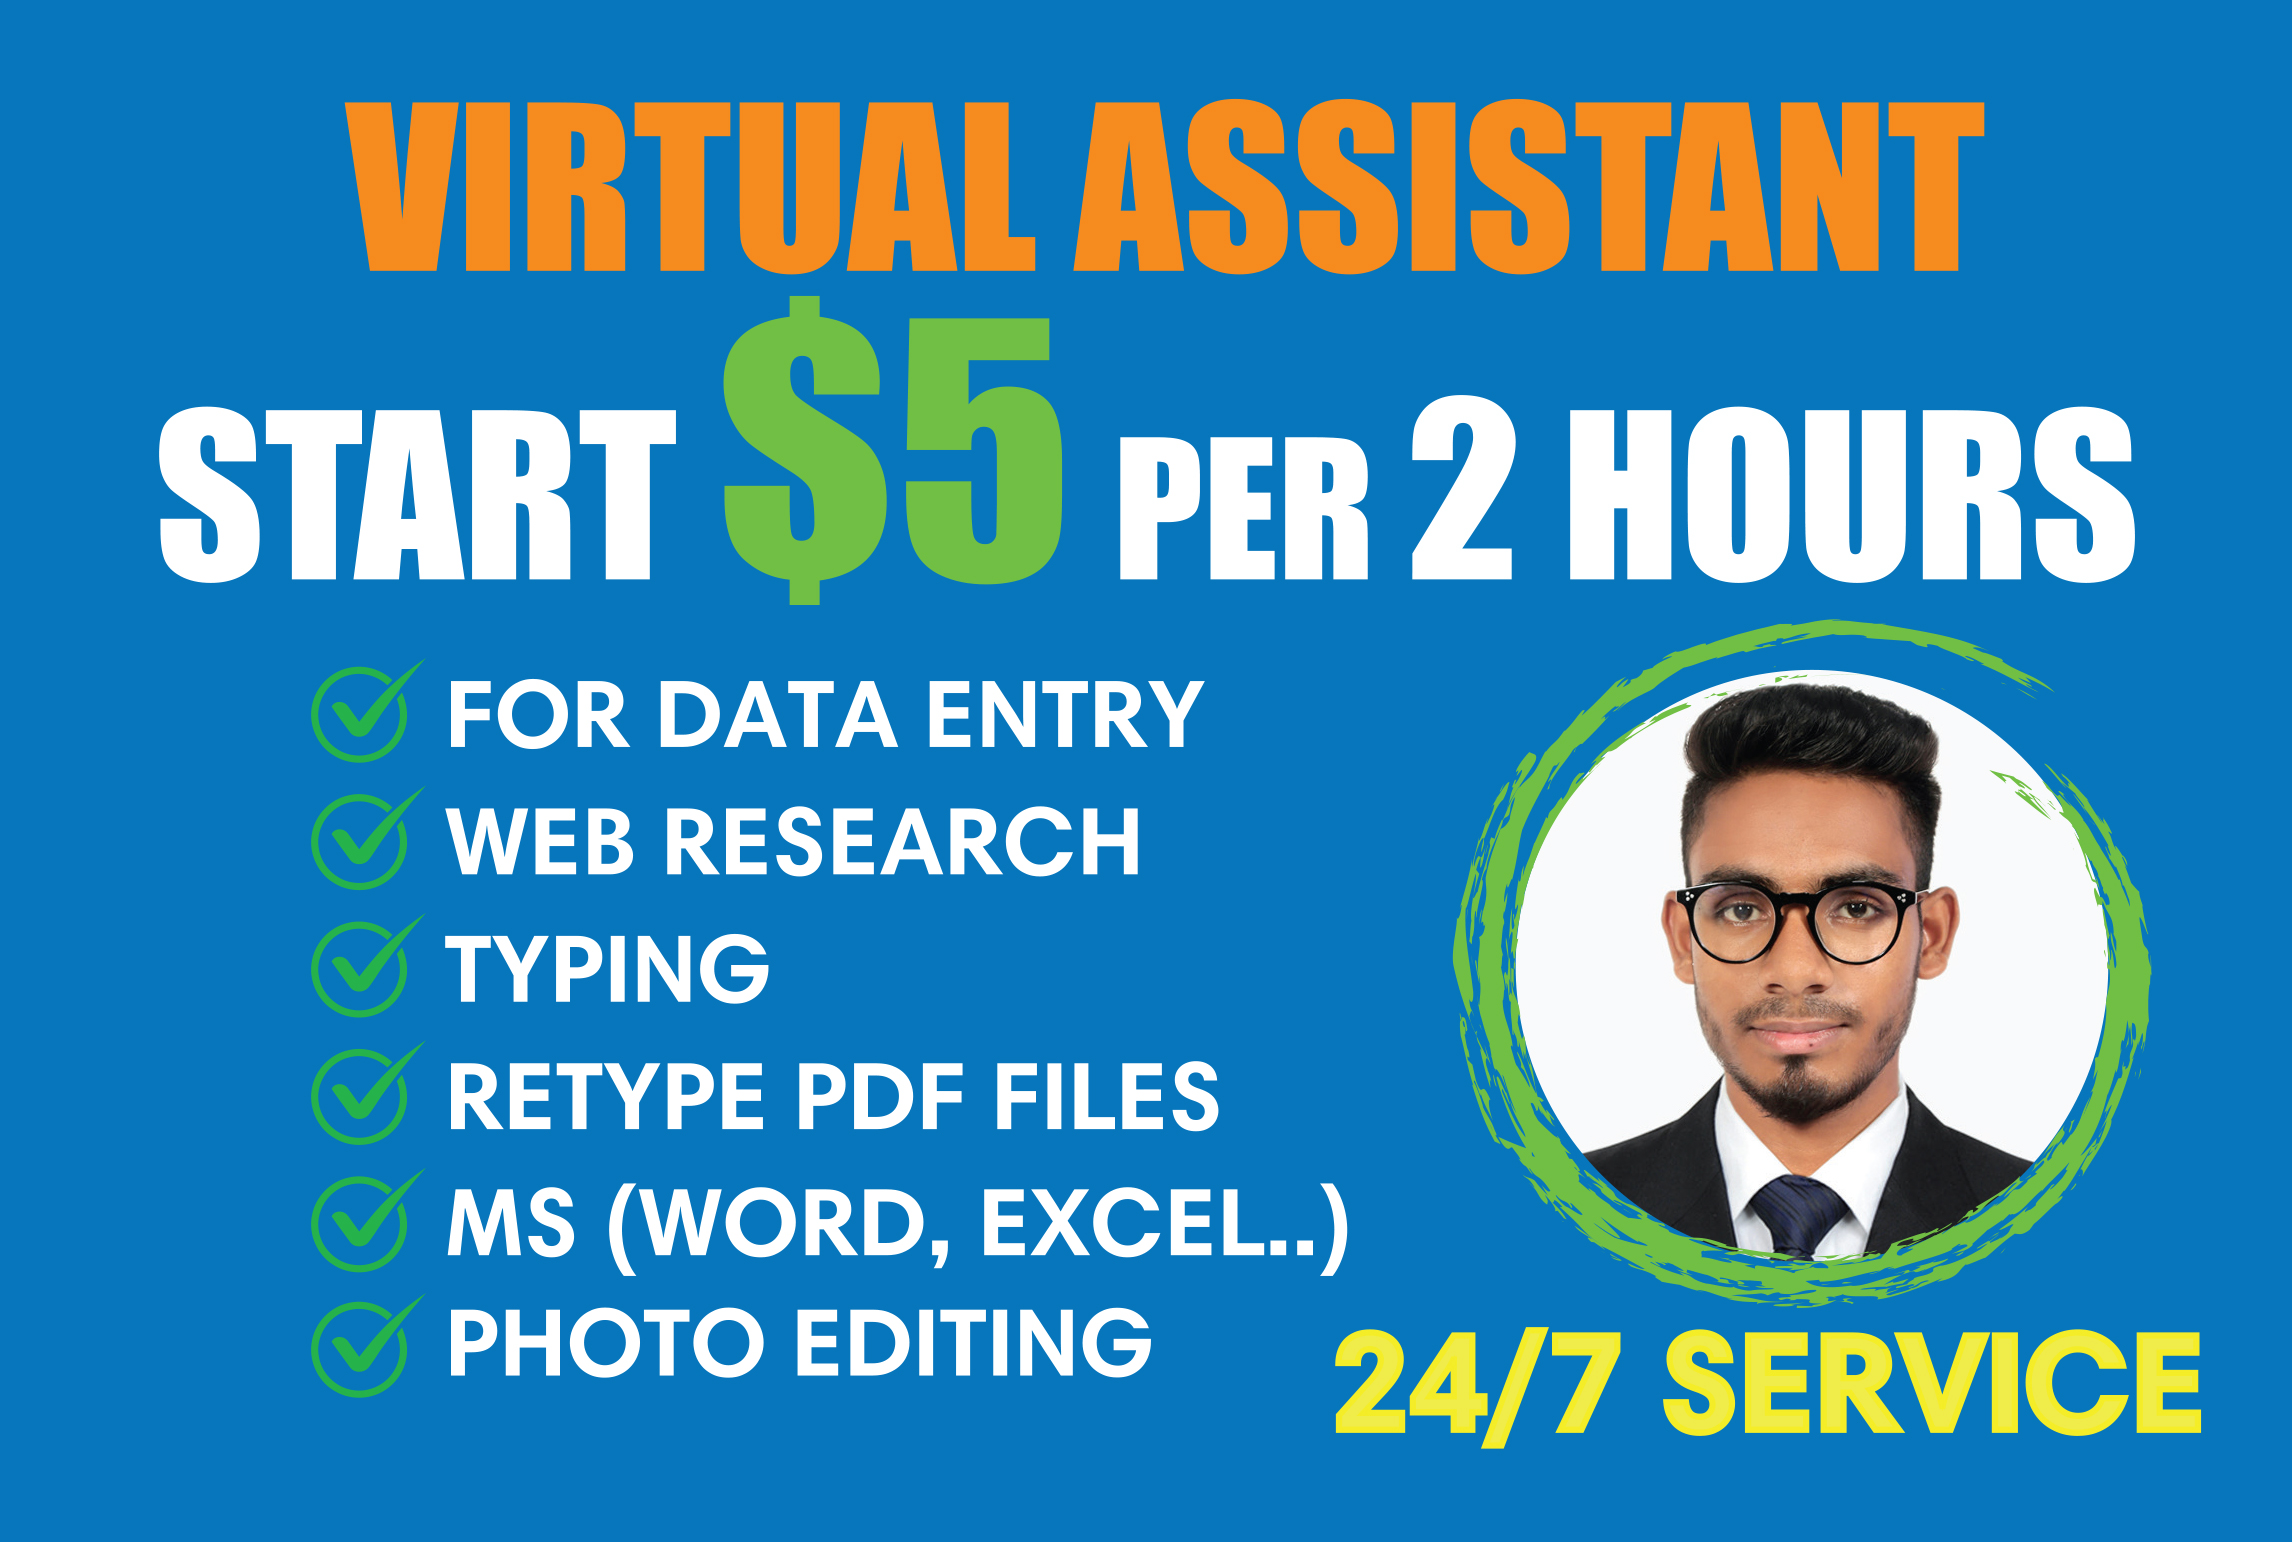 i will be your virtual assistant for any type of data entry work